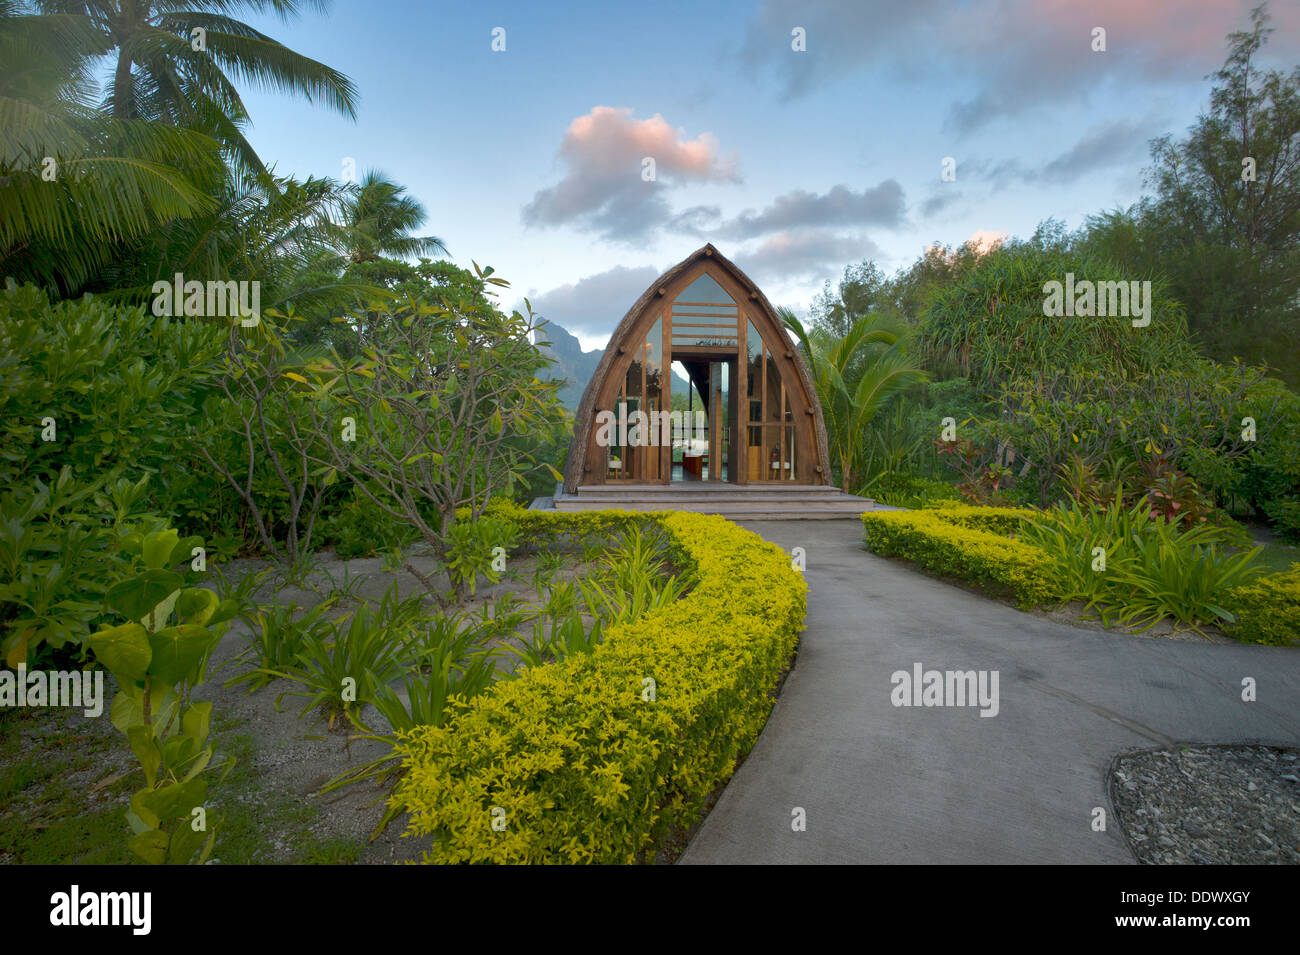 Chapel at Four Seasons hotel. Bora Bora. French Polynesia - Stock Image